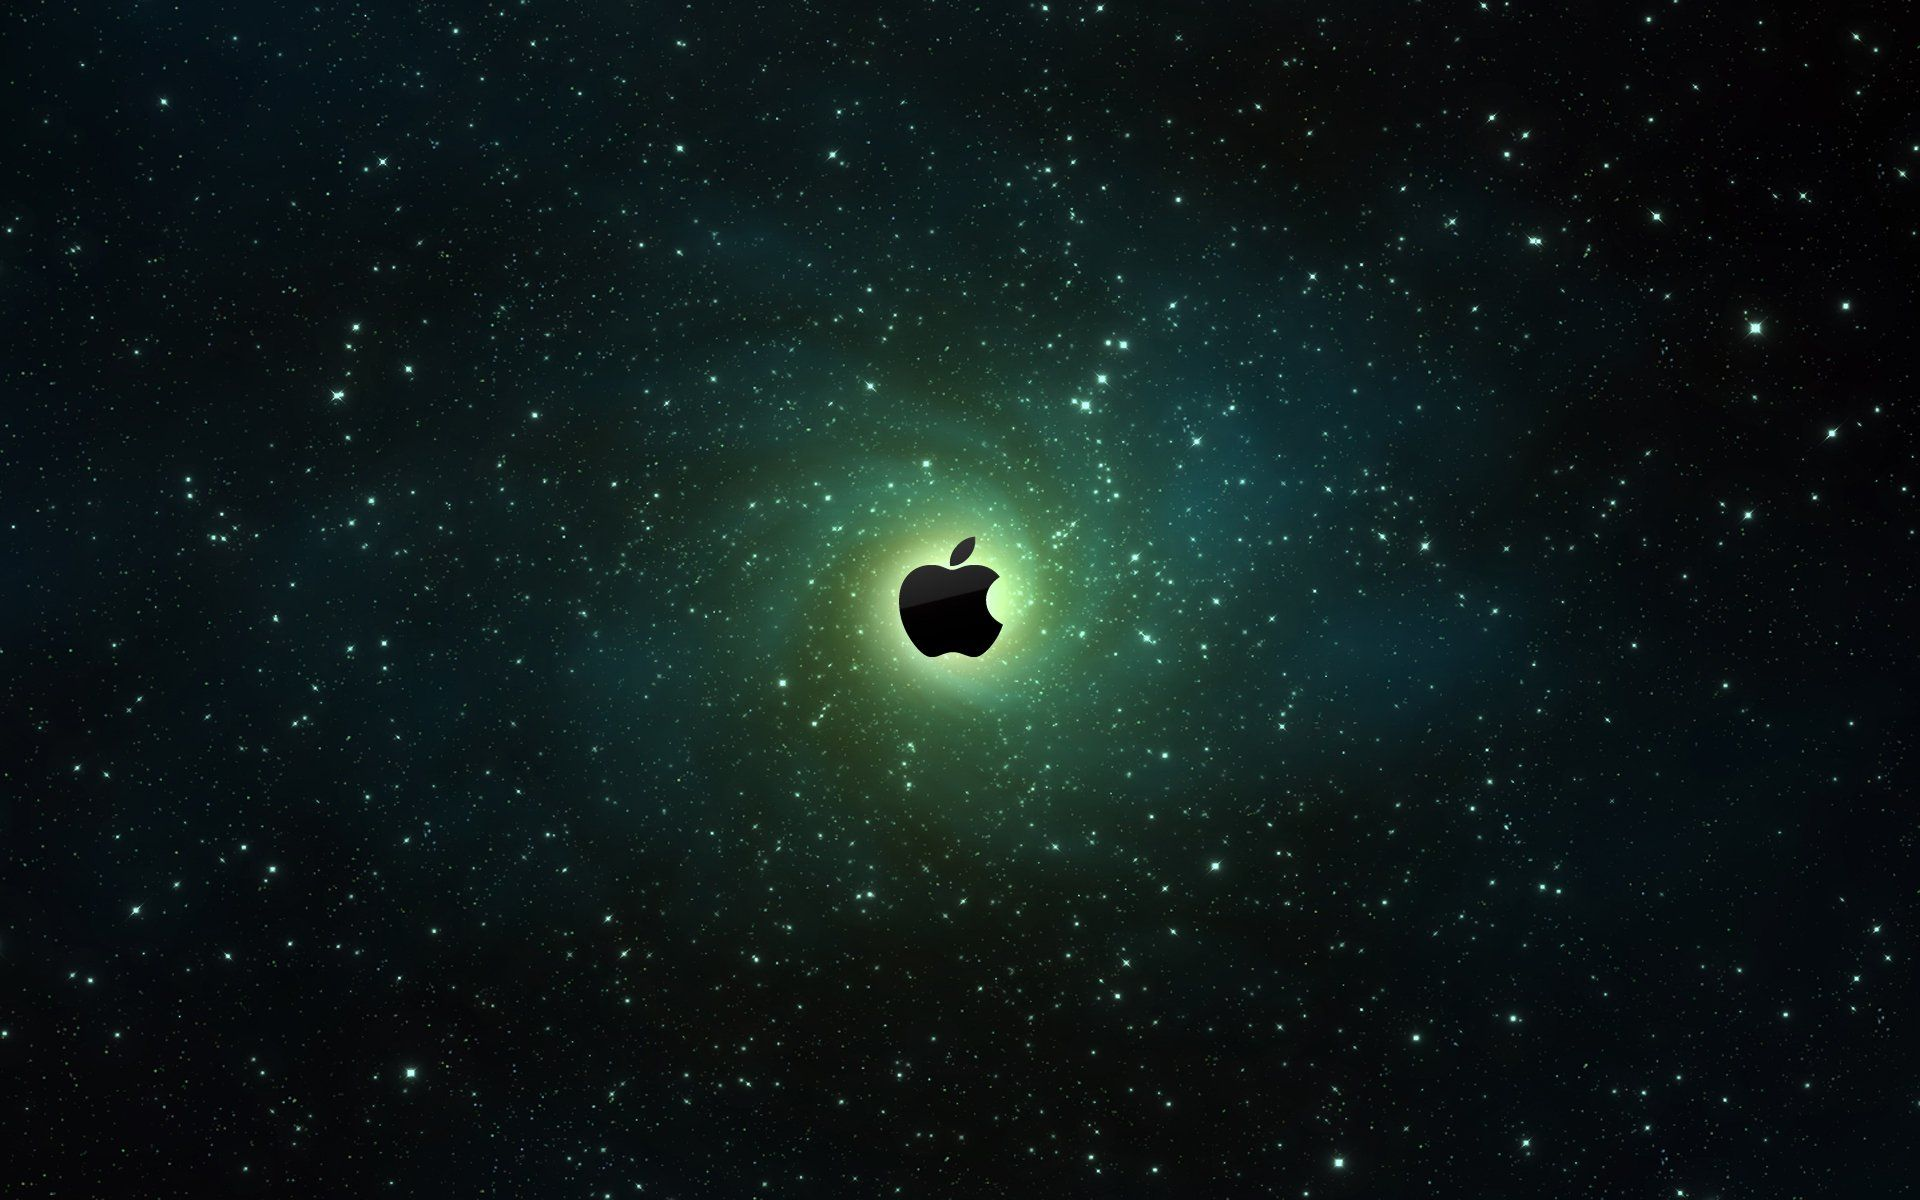 Top Wallpaper Halloween Macbook Air - 4a153f6f9bd86655a9dfe7af56b53eee  Perfect Image Reference_887234.jpg